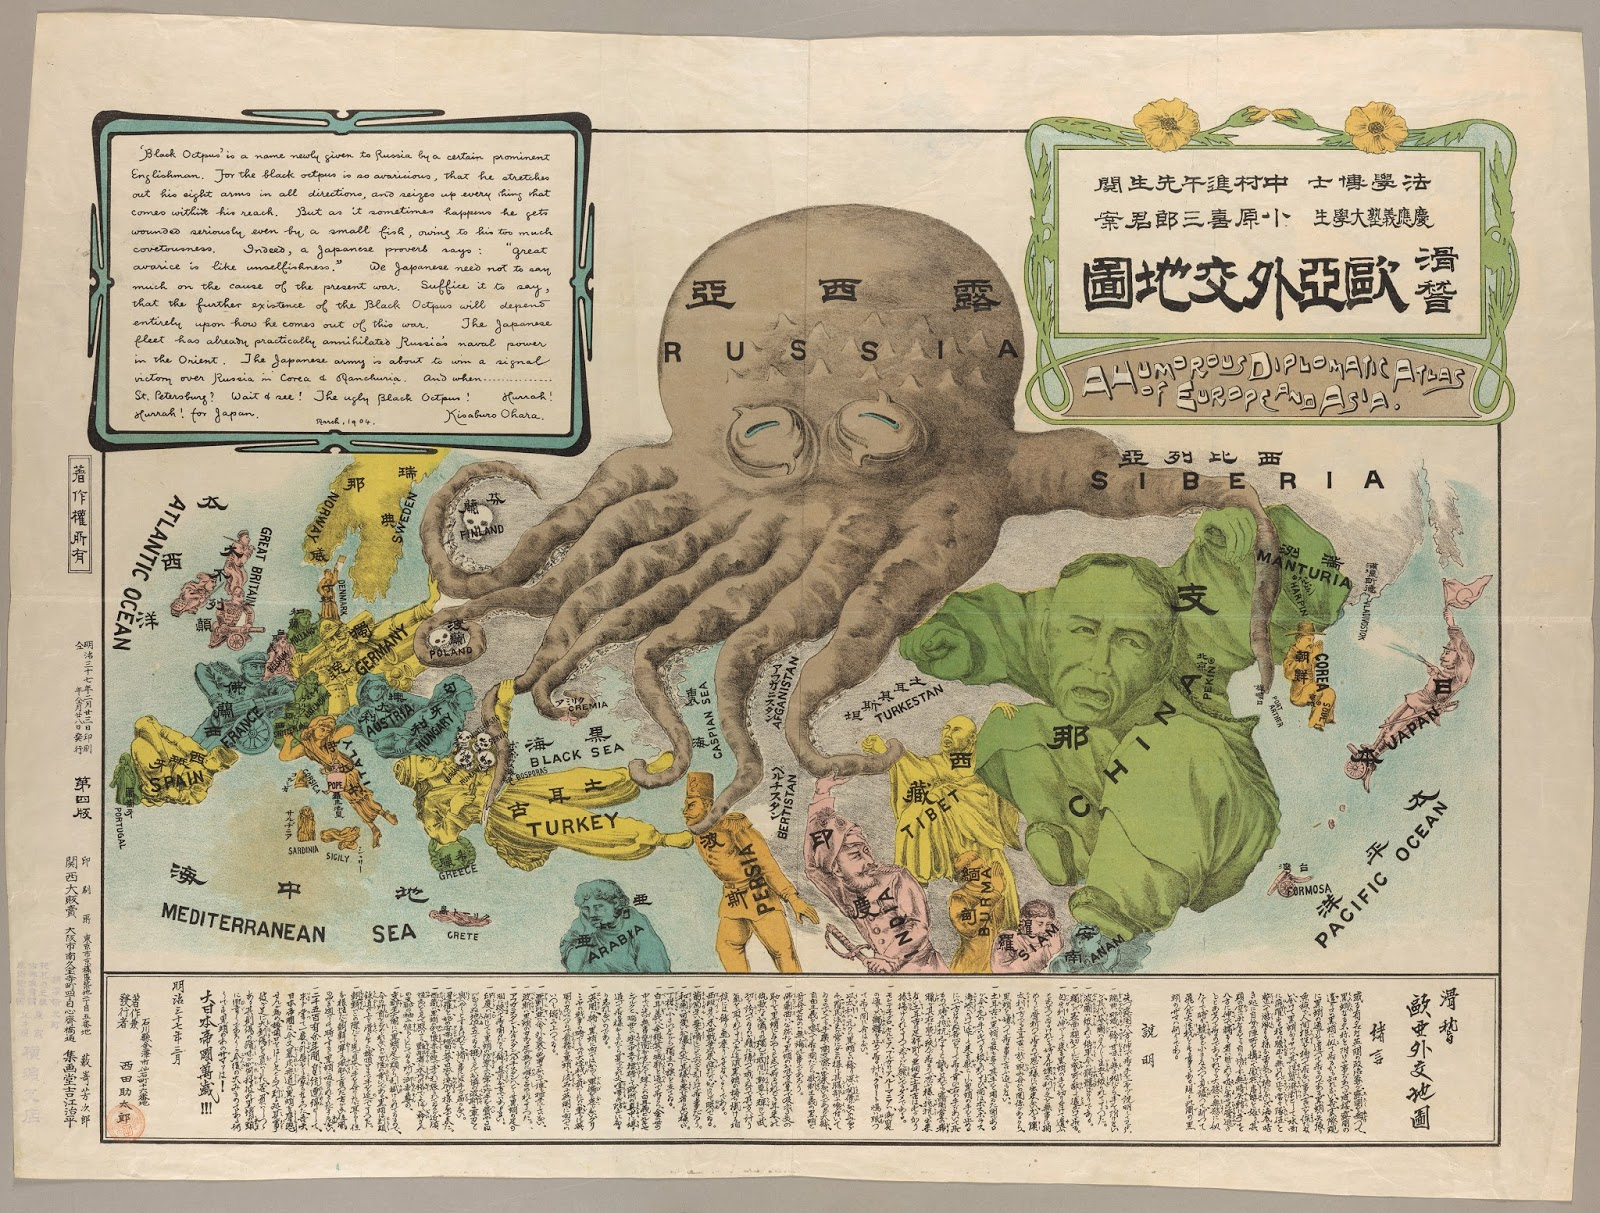 An anti-Russia satirical map produced by a Japanese student in 1877 during the Russo-Japanese War